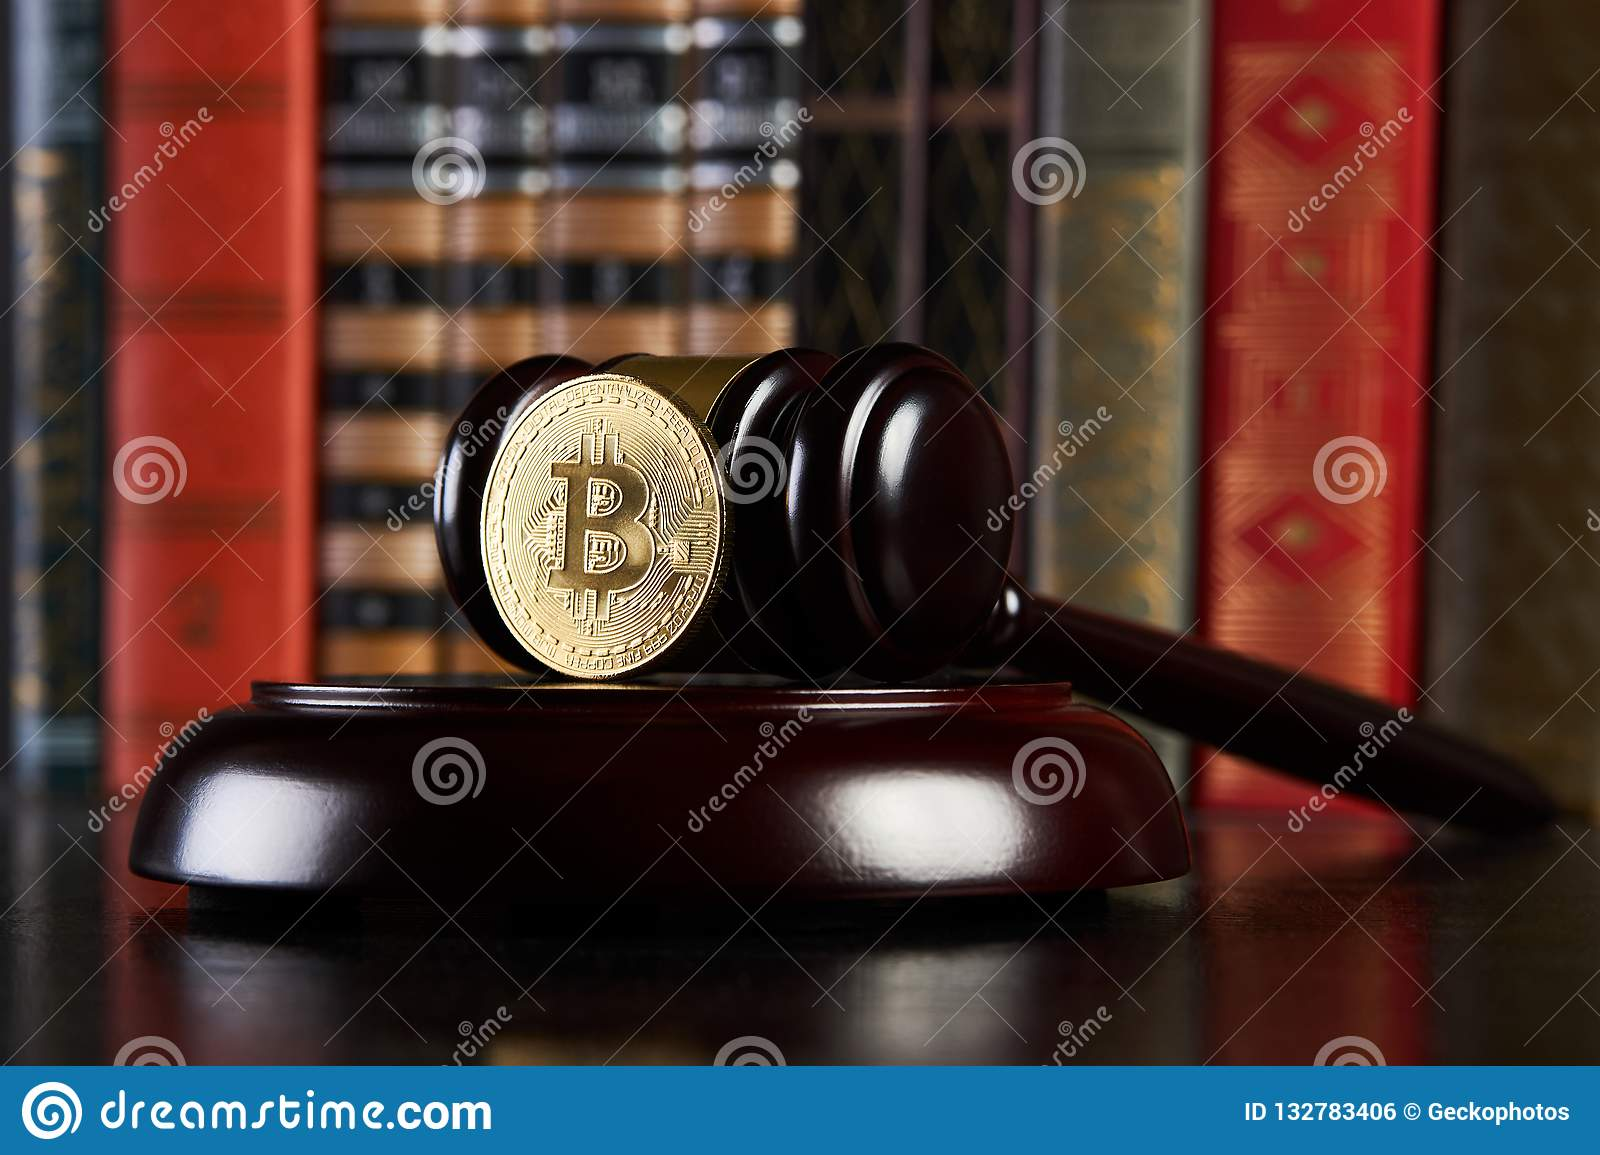 Crypto currency law 2847 plus500 withdraw bitcoins stock